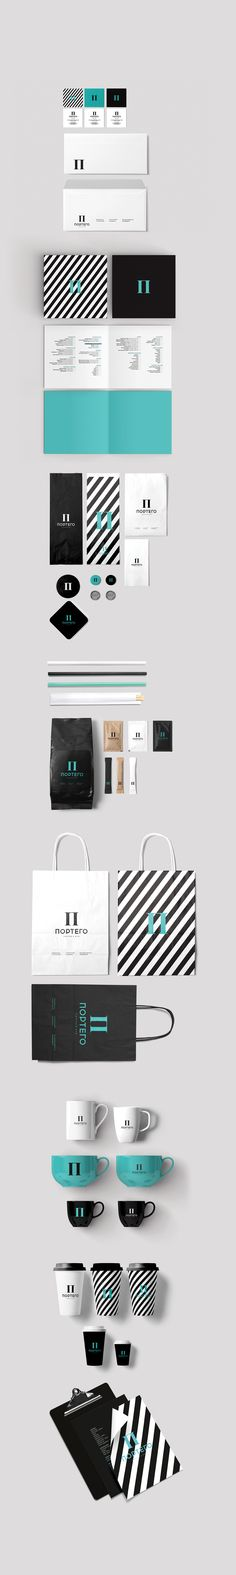 Layout Design | Marios G. Kordilas on Behance